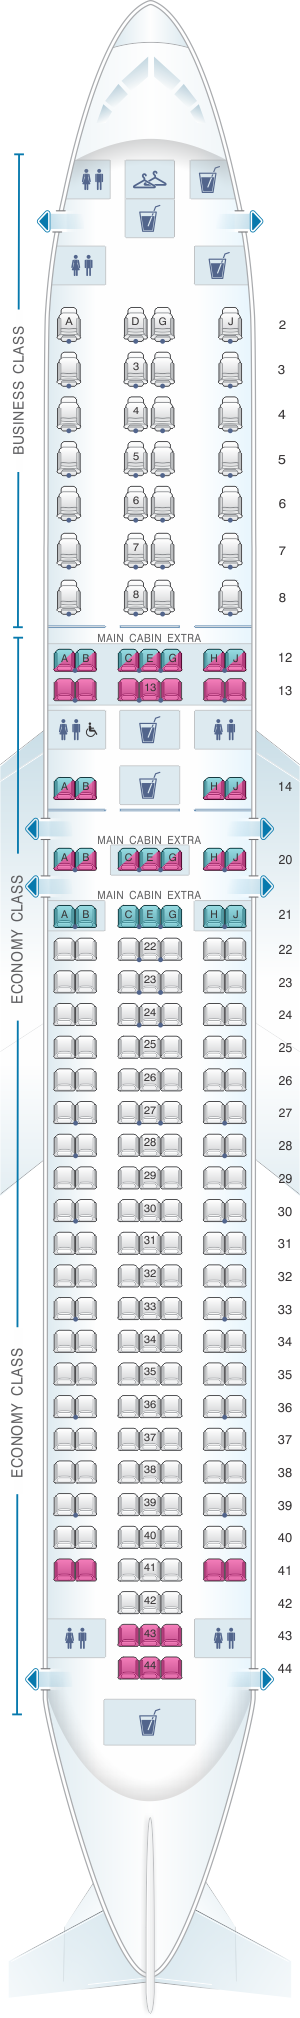 Seat map for American Airlines Boeing B767 300